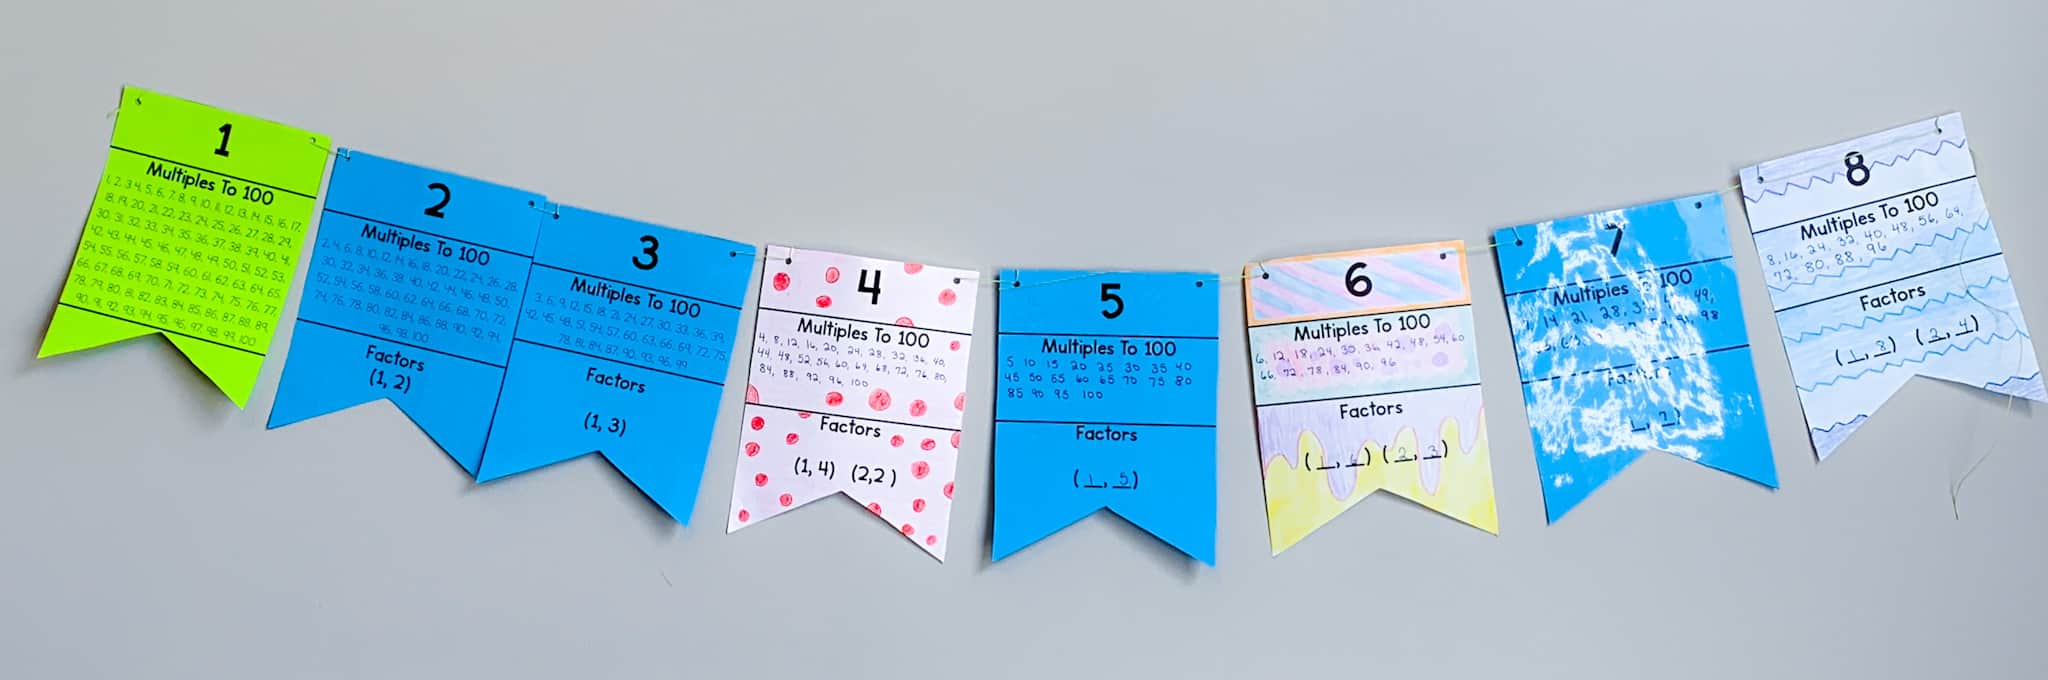 Multiple colorful paper banners to represent multiples and prime numbers